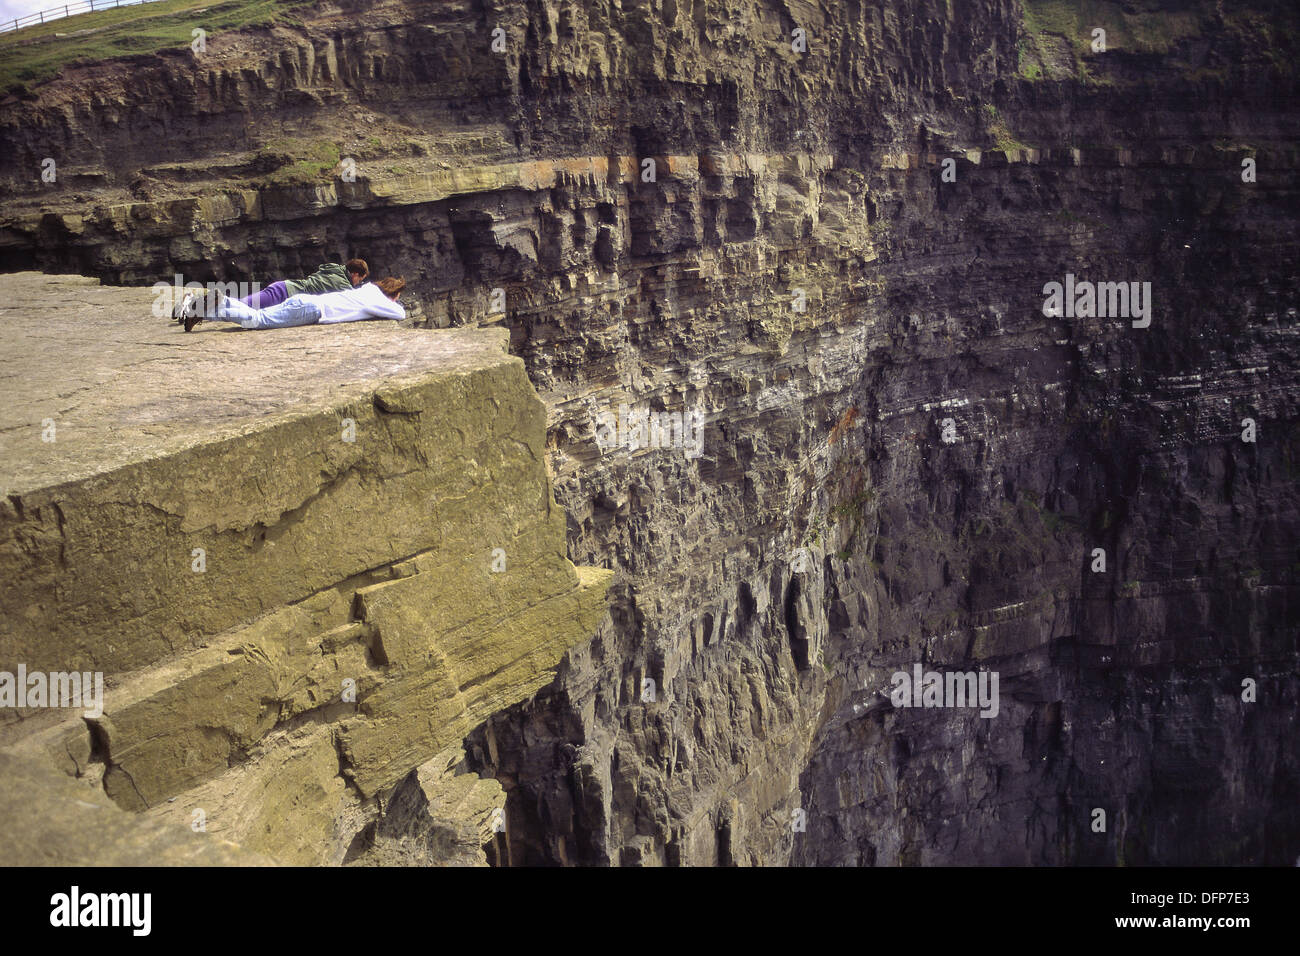 Two people lie precariously on the edge of great slab overlooking the Cliffs of Moher near Lahinch. Co. Clare, Ireland - Stock Image